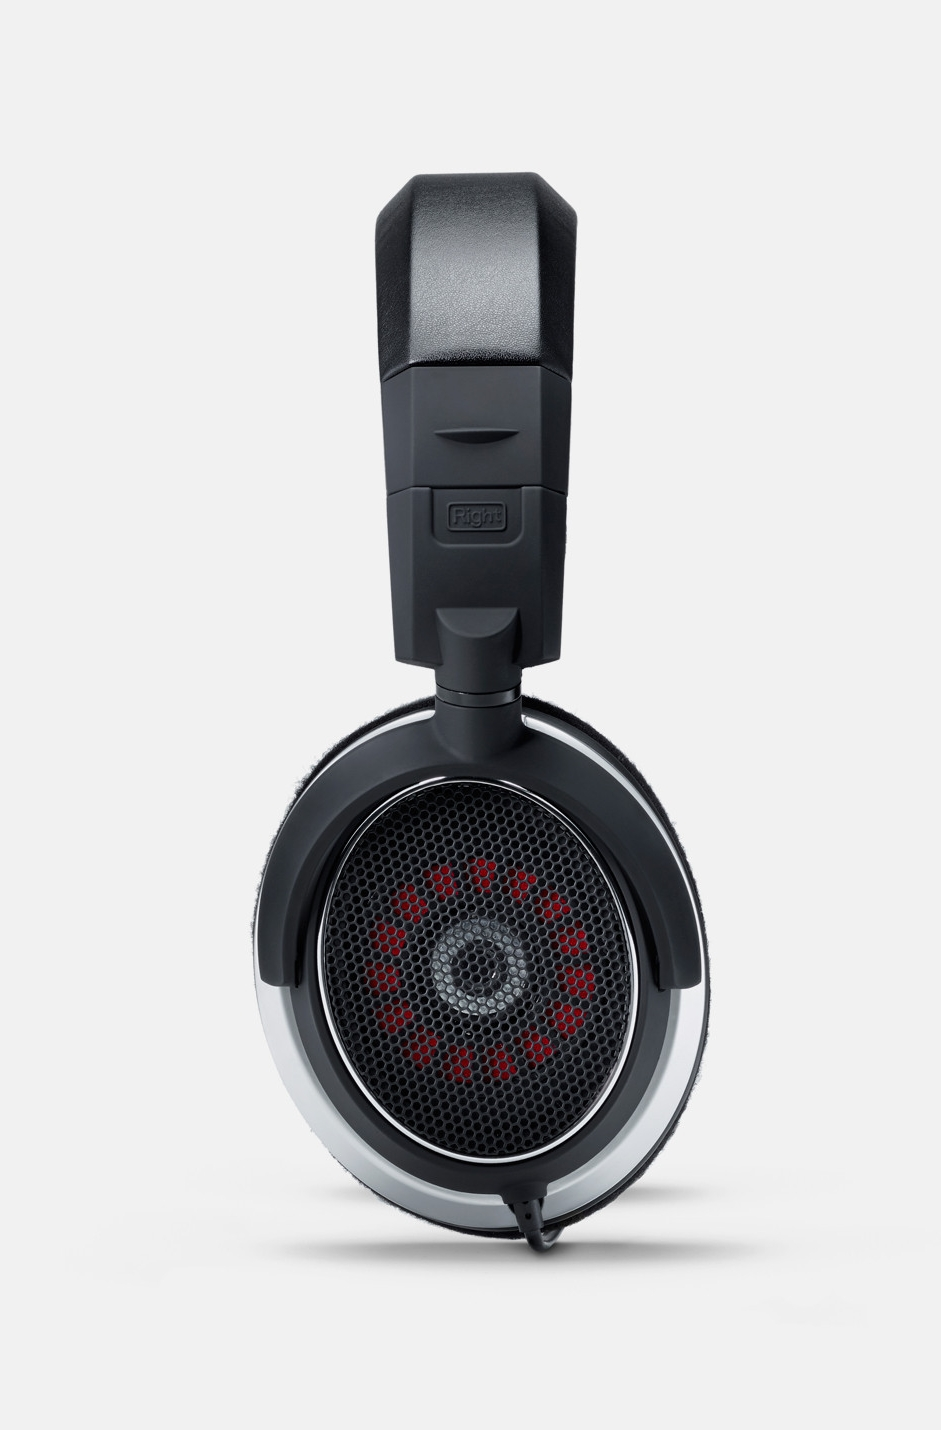 Status Audio OB-1 showing its exposed dynamic driver diaphram. The open back design helps this headphone deliver a spacious sound with a wide and detailed soundstage.